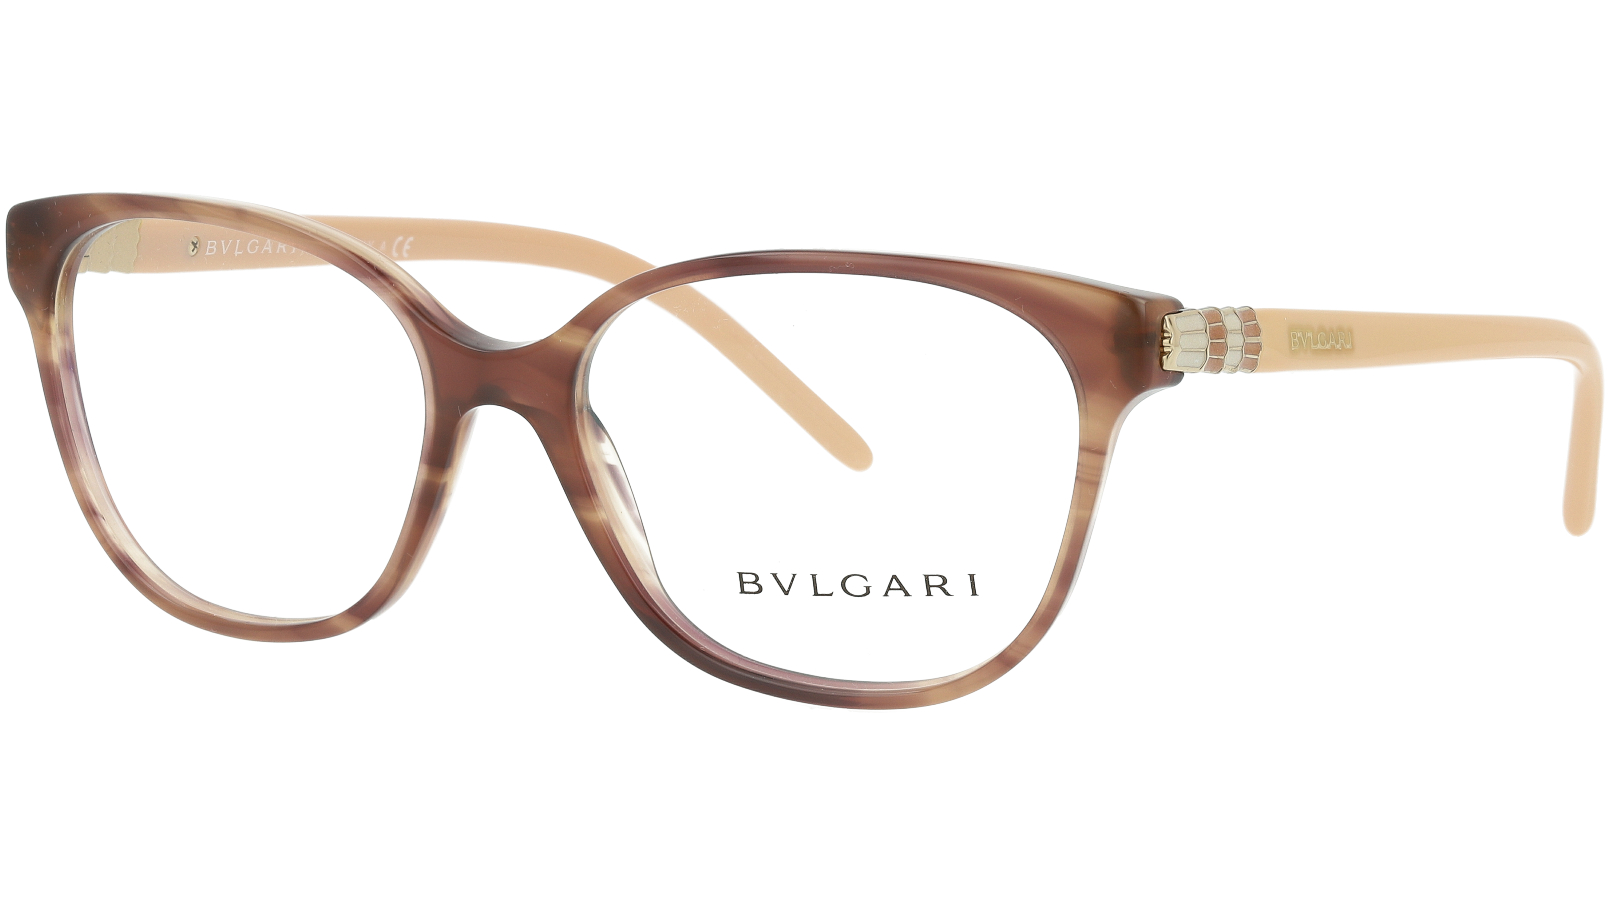 BVLGARI BV4105 5240 54 BROWN Glasses